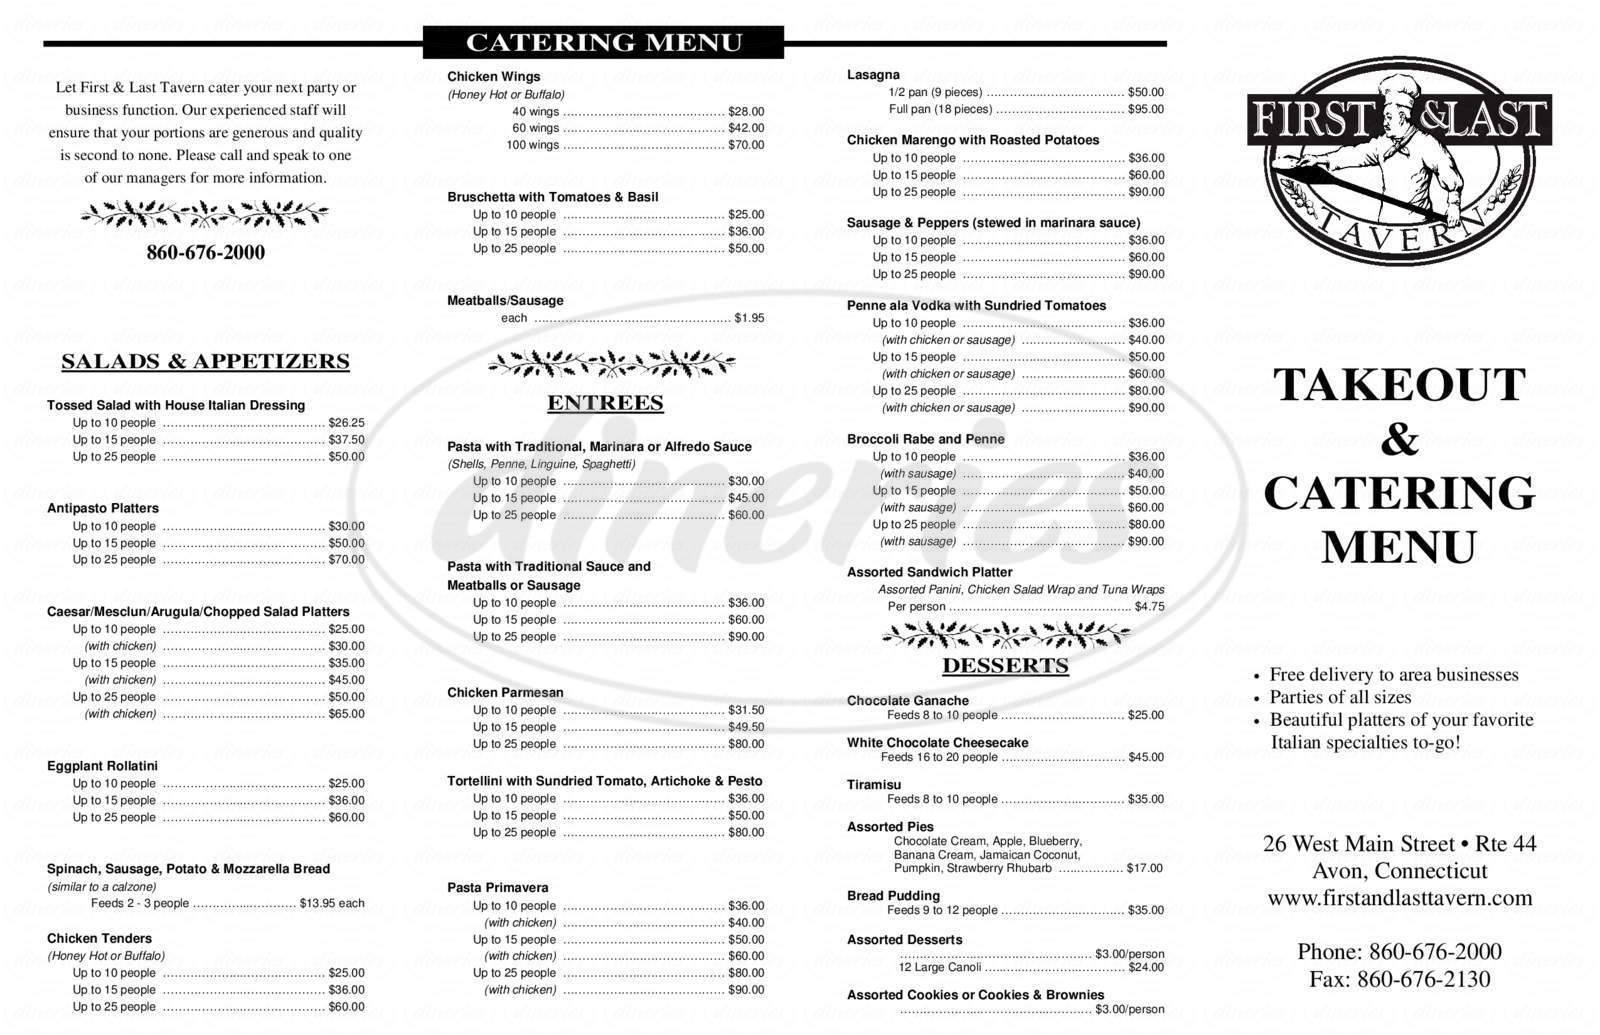 menu for First & Last Tavern